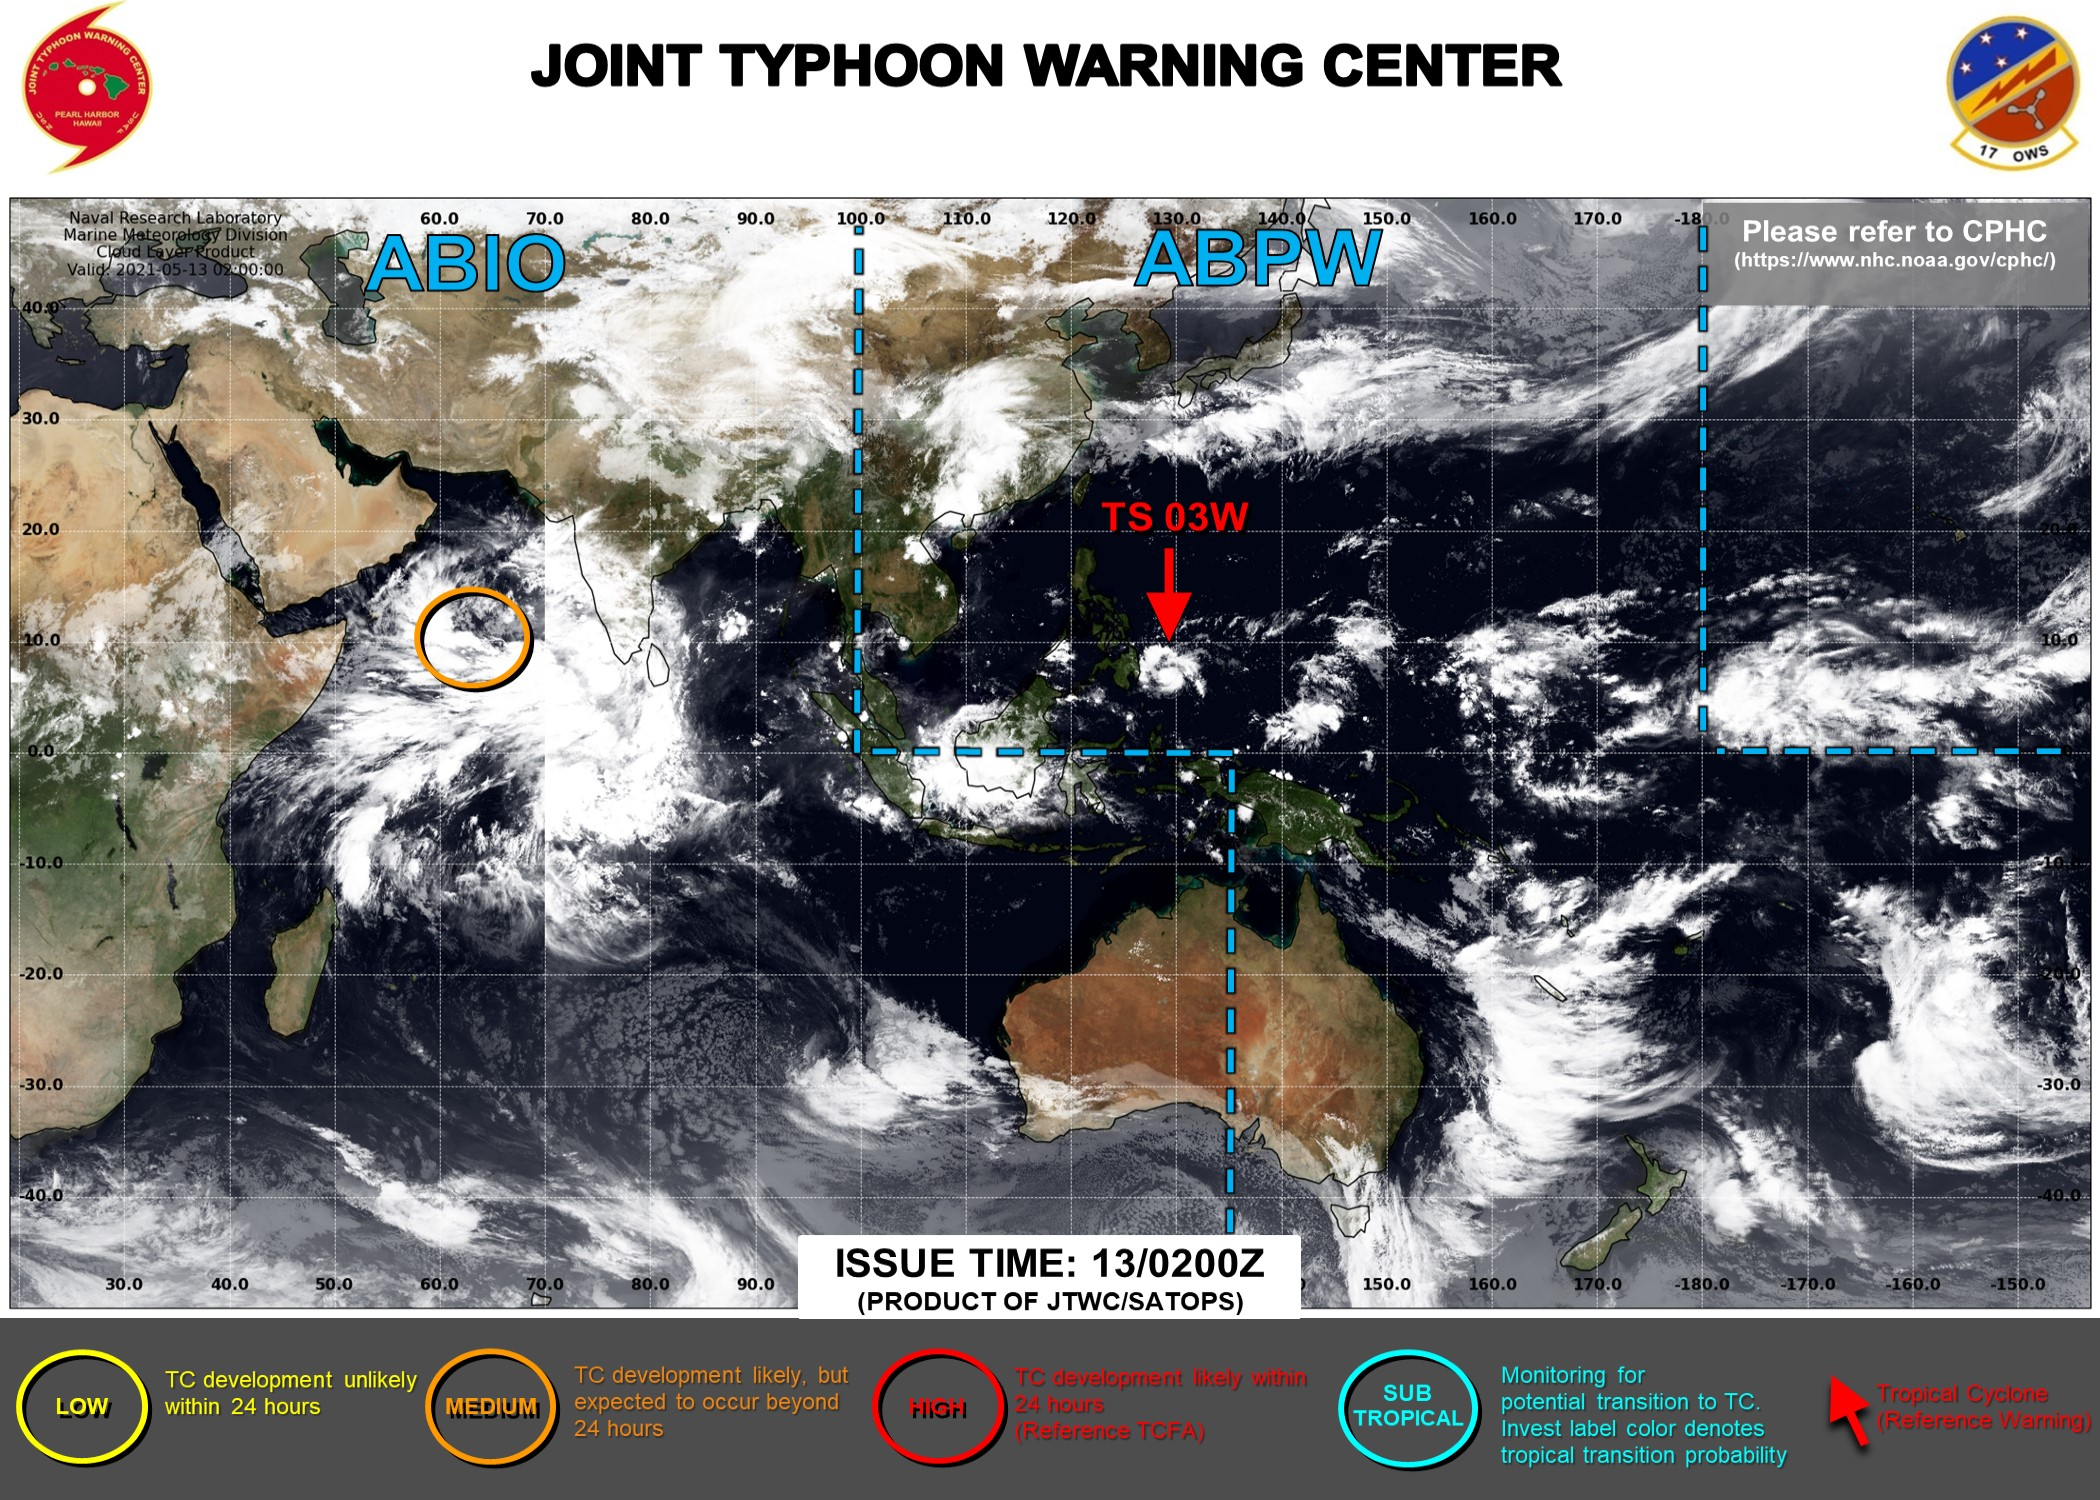 13/03UTC.JTWC IS ISSUING 6HOURLY WARNINGS AND 3HOURLY SATELLITE BULLETINS ON 03W. INVEST 92A REMAINS MEDIUM: MODERATE CHANCES OF HAVING 35KNOT WINDS NEAR ITS CENTER WITHIN 24HOURS.